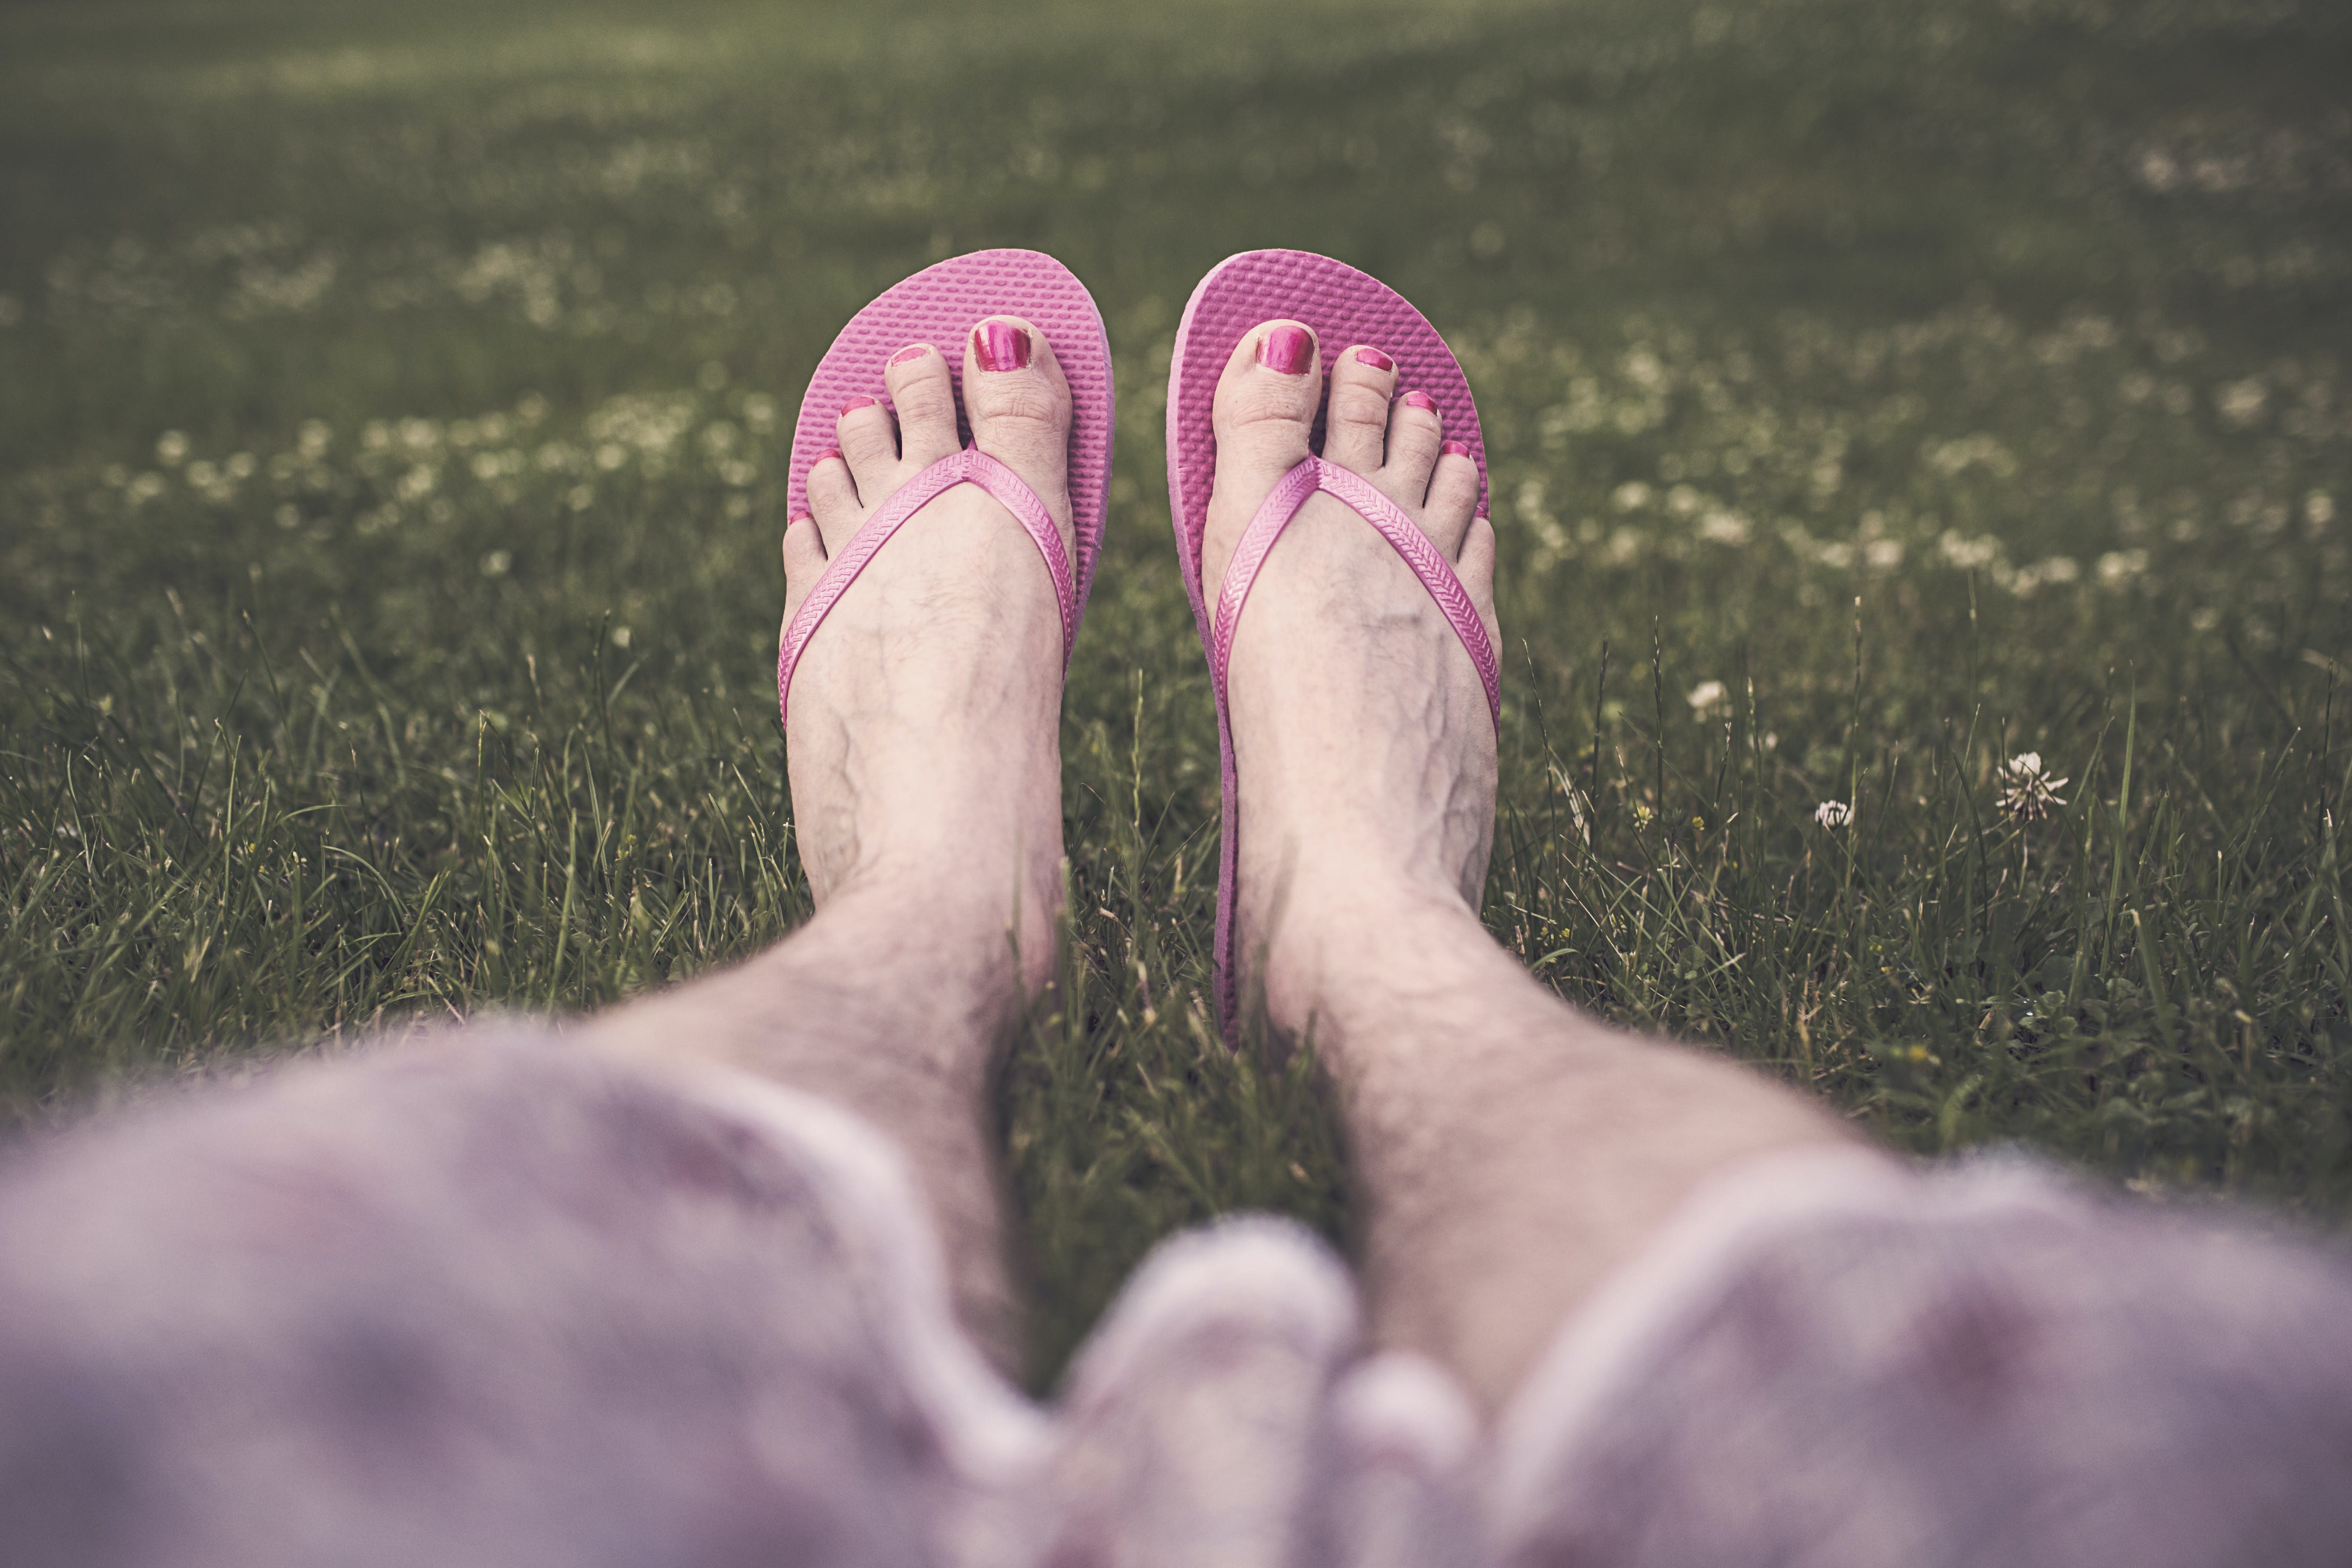 Selective Focus Photography of Person Sitting While Wearing Pair of Pink Flip-flops